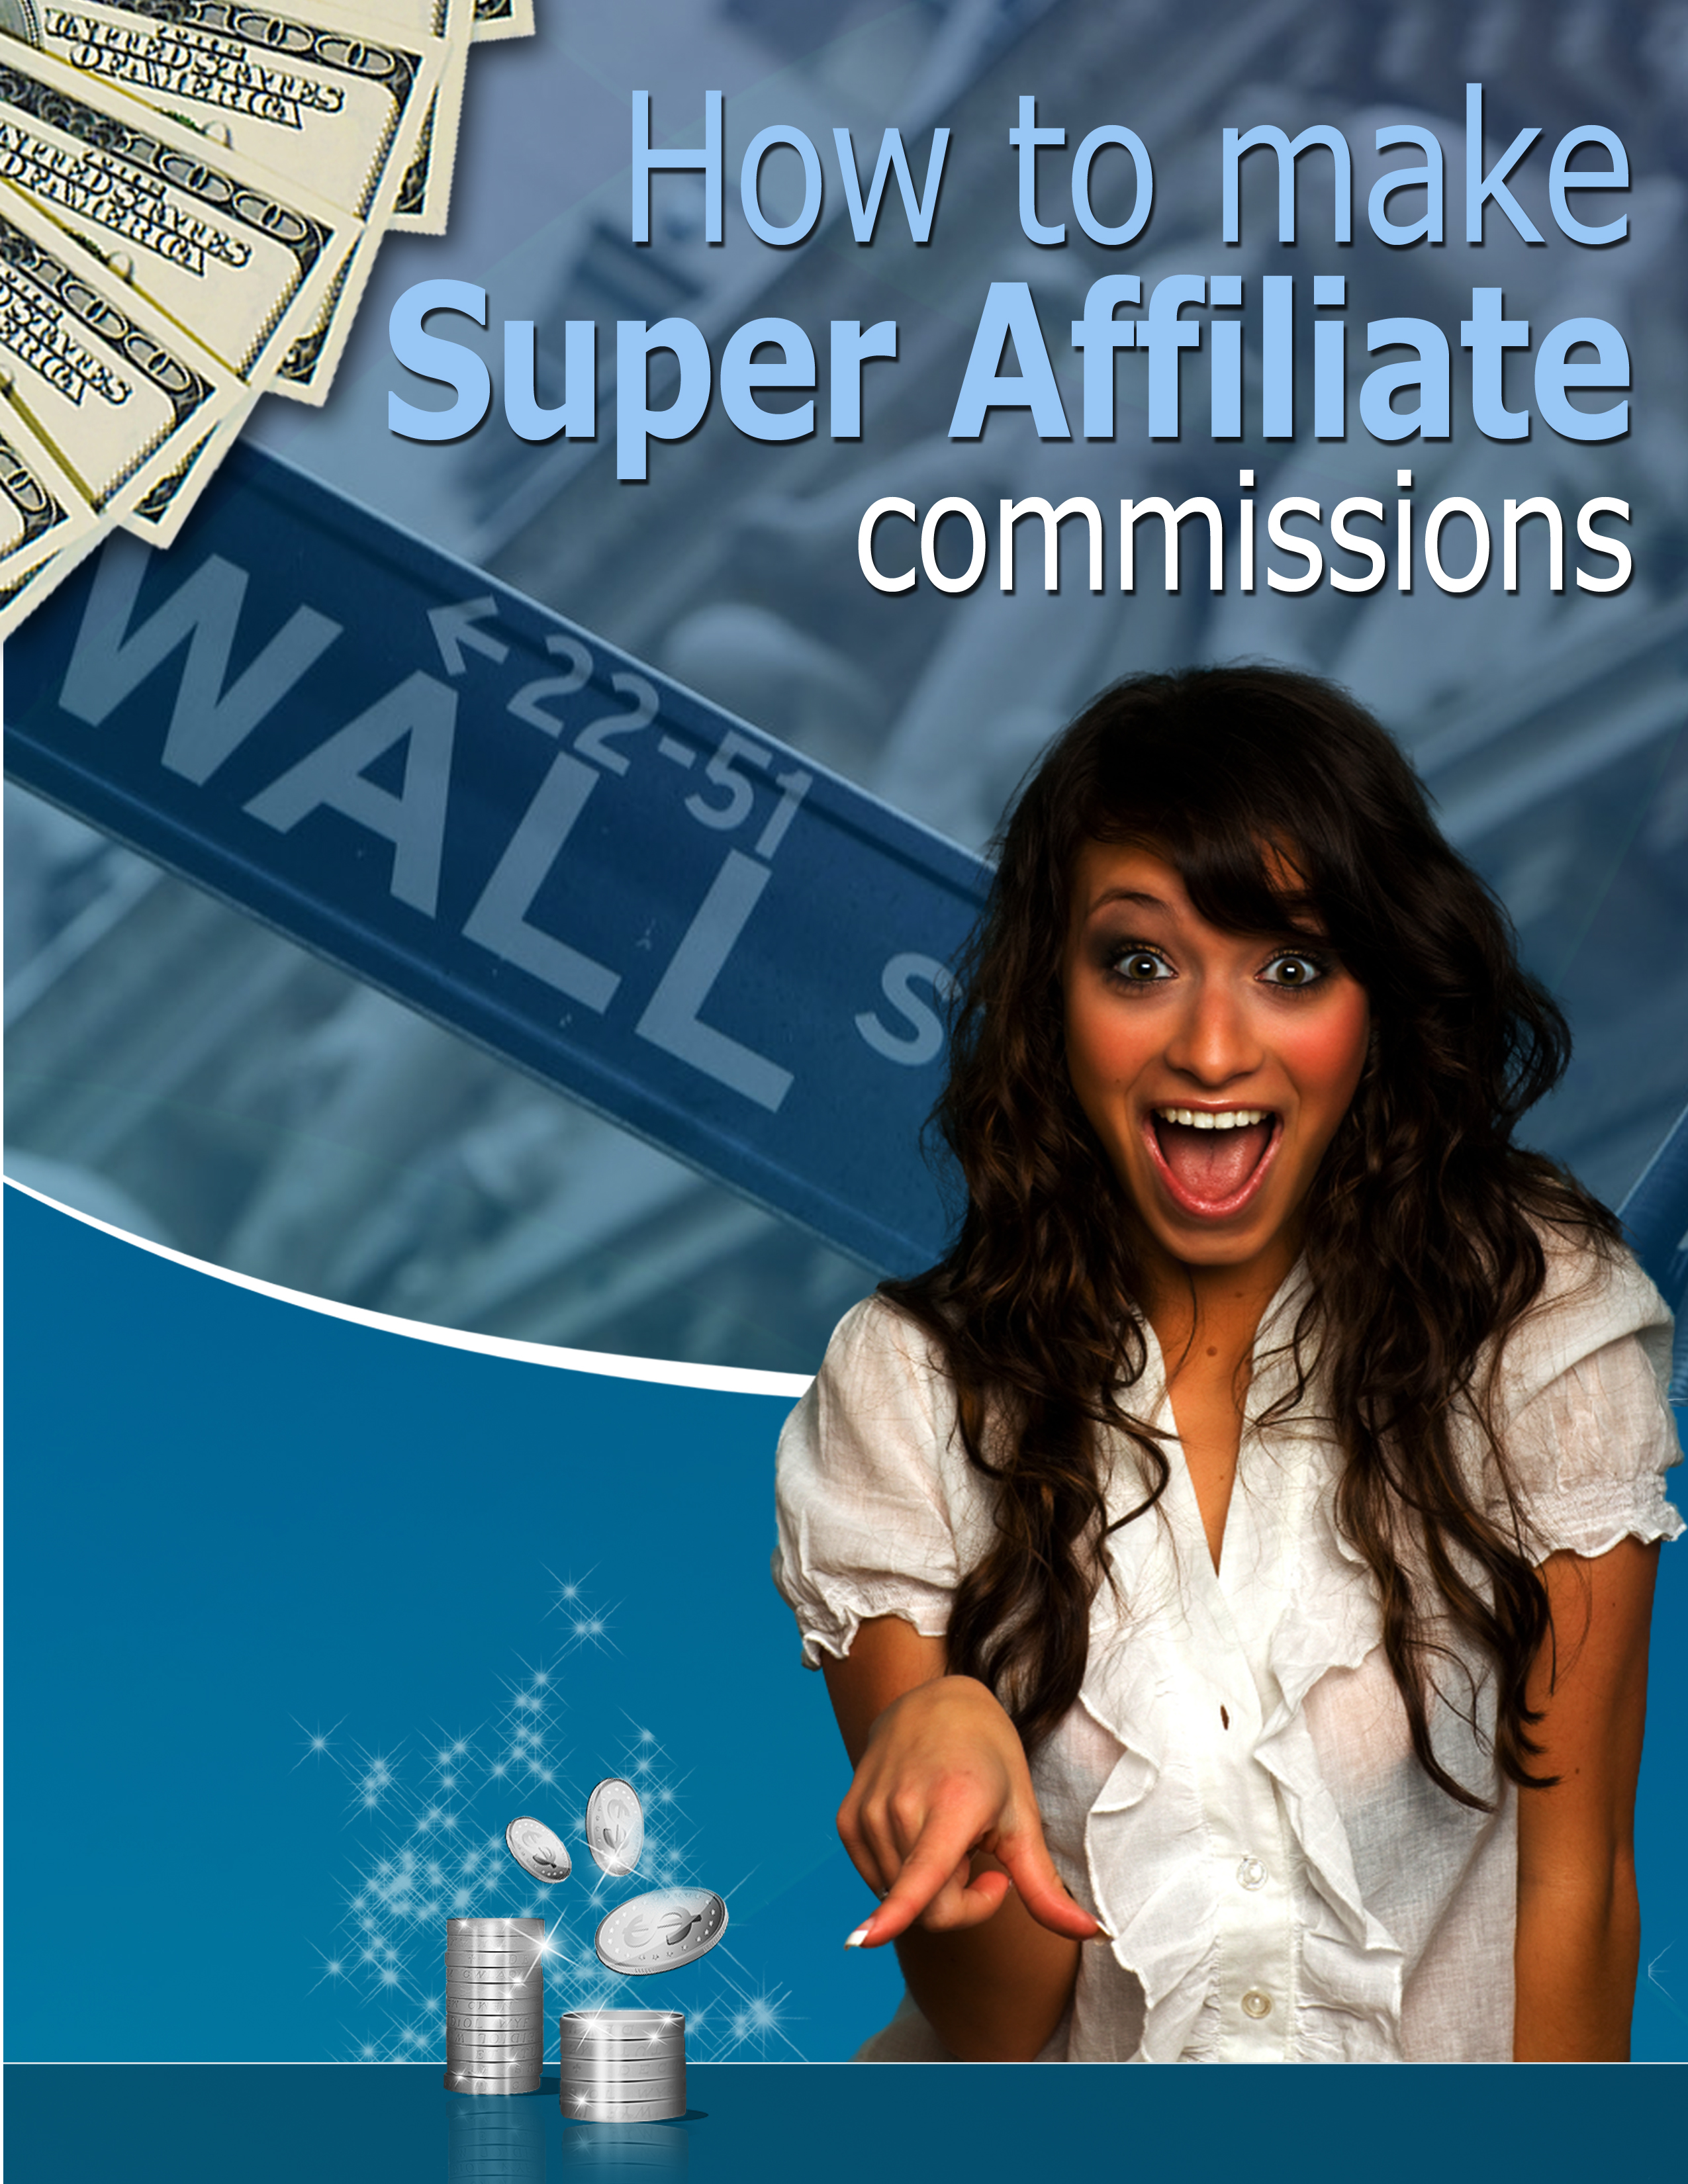 How_to_make_Super_Affiliate_commissions.jpg